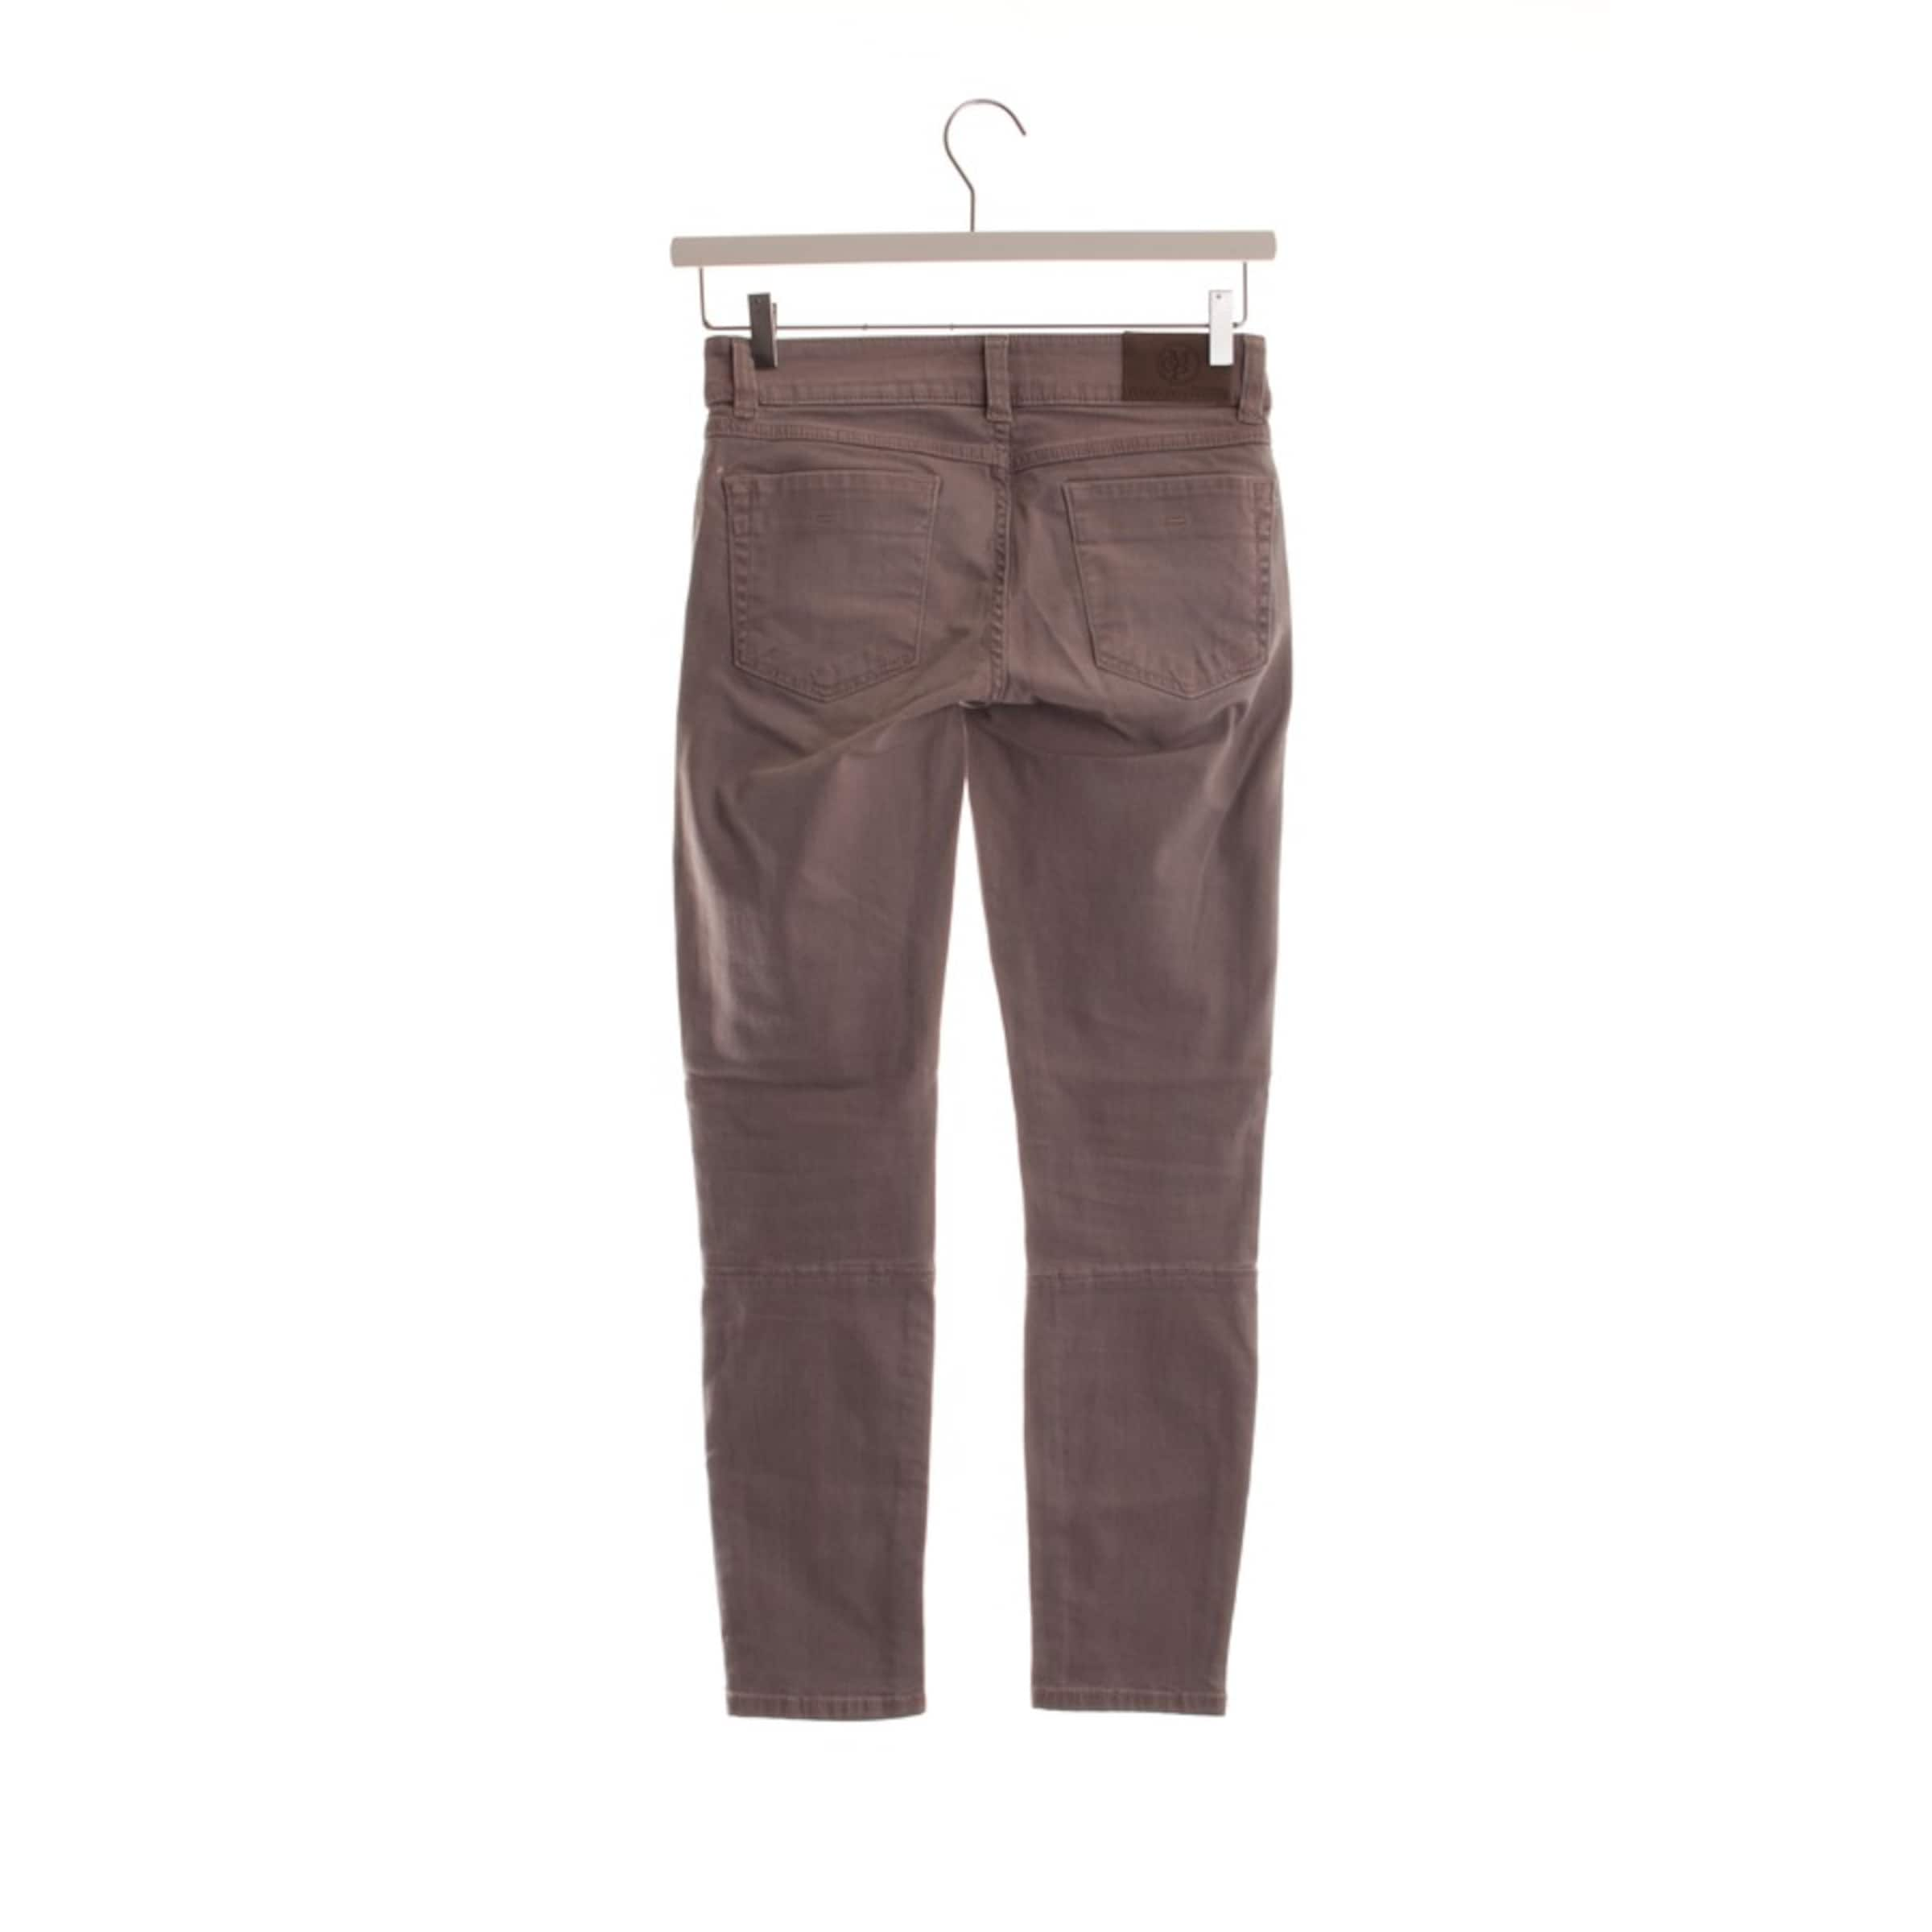 Marc O'Polo Jeans in w27 in taupe